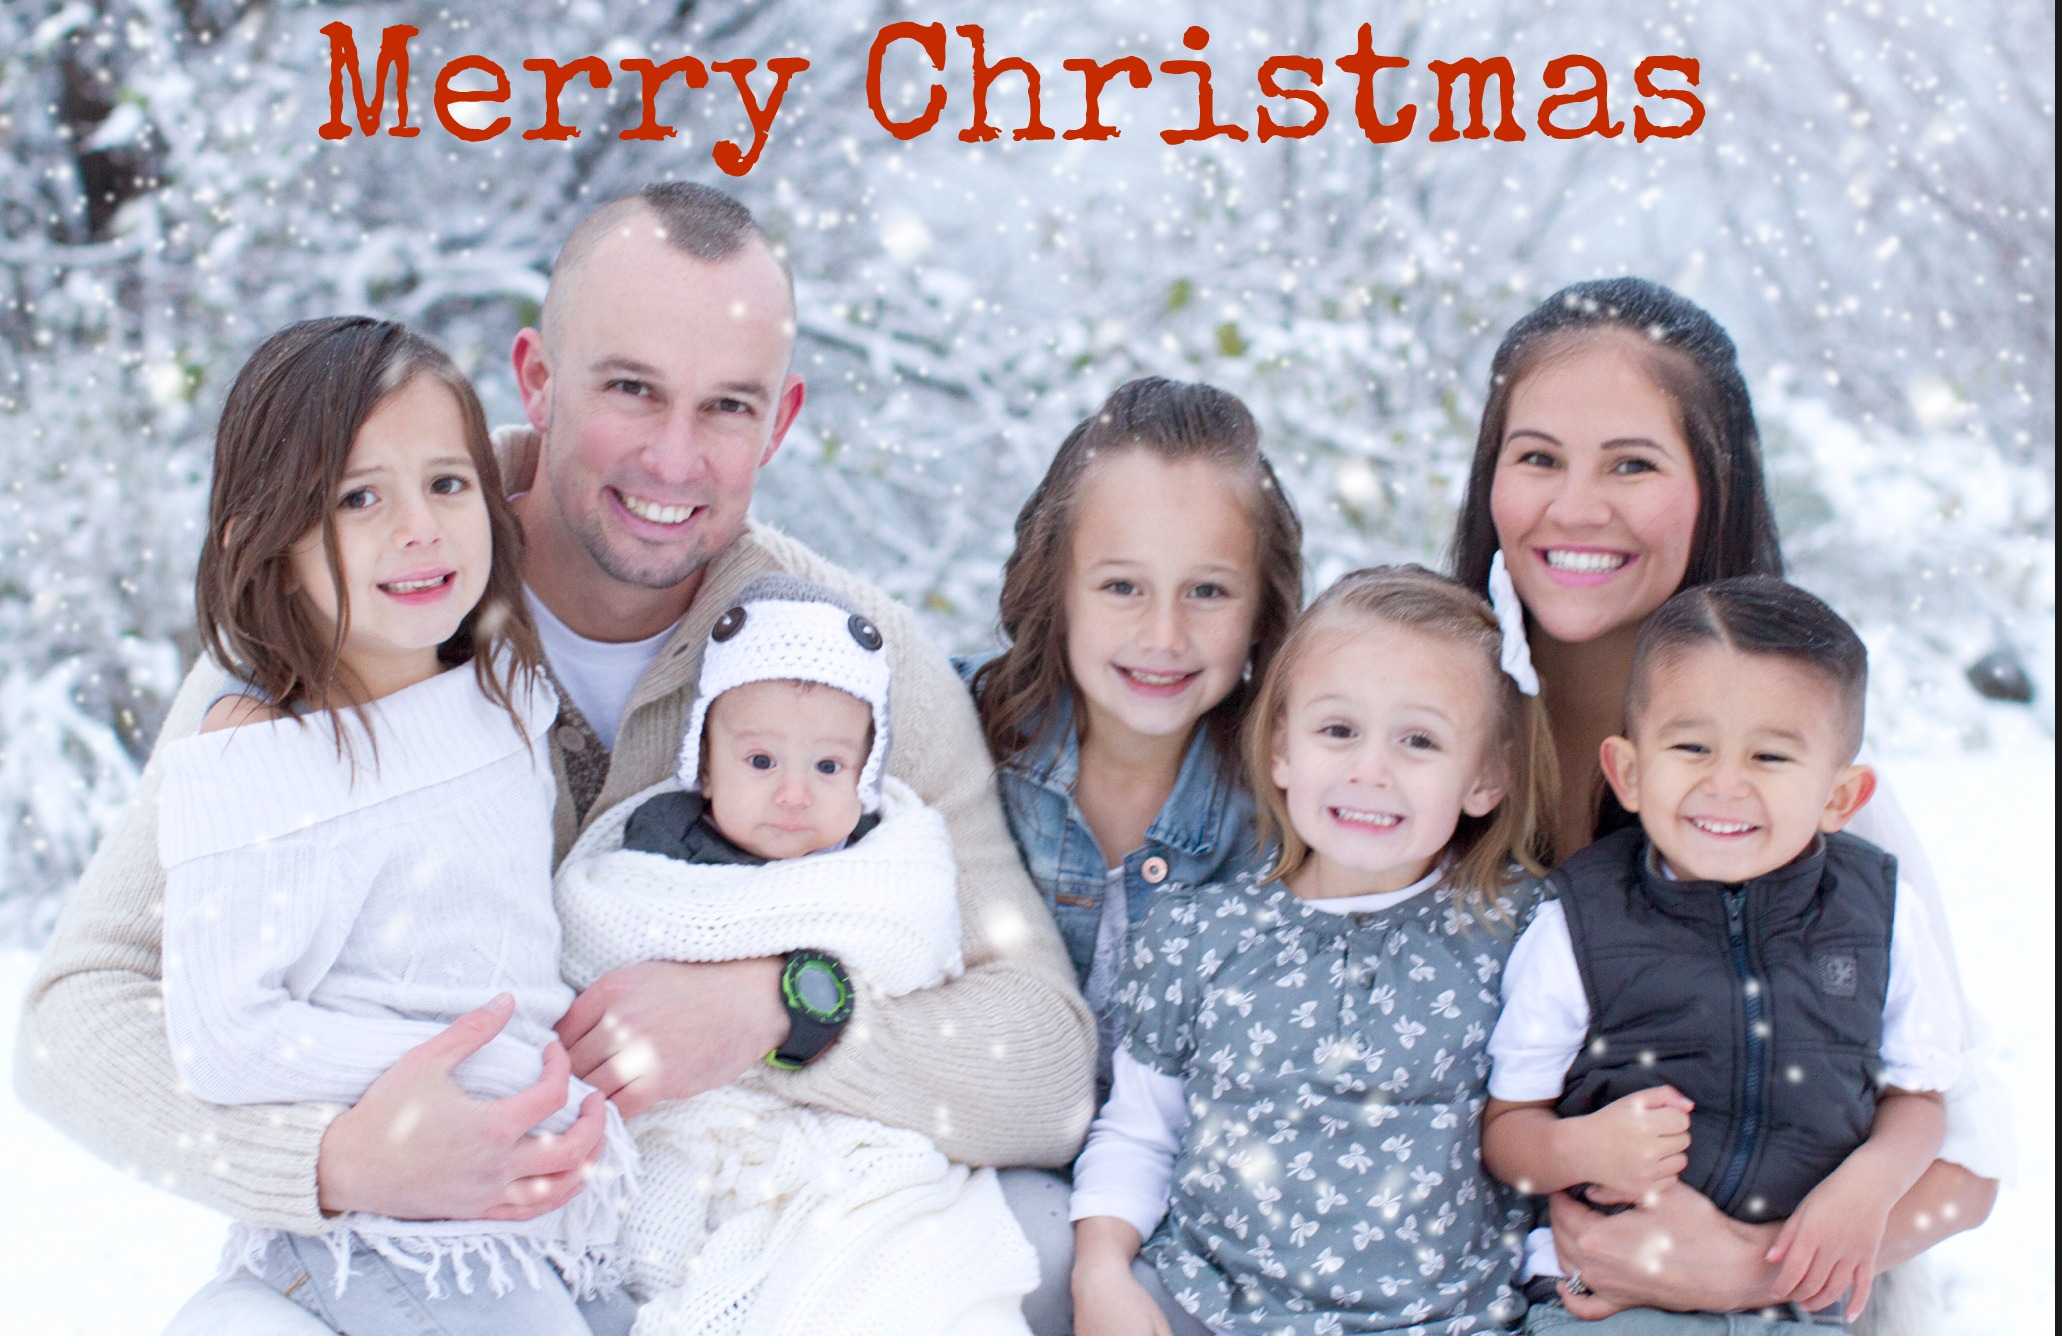 Merry Christmas from the Hobbs